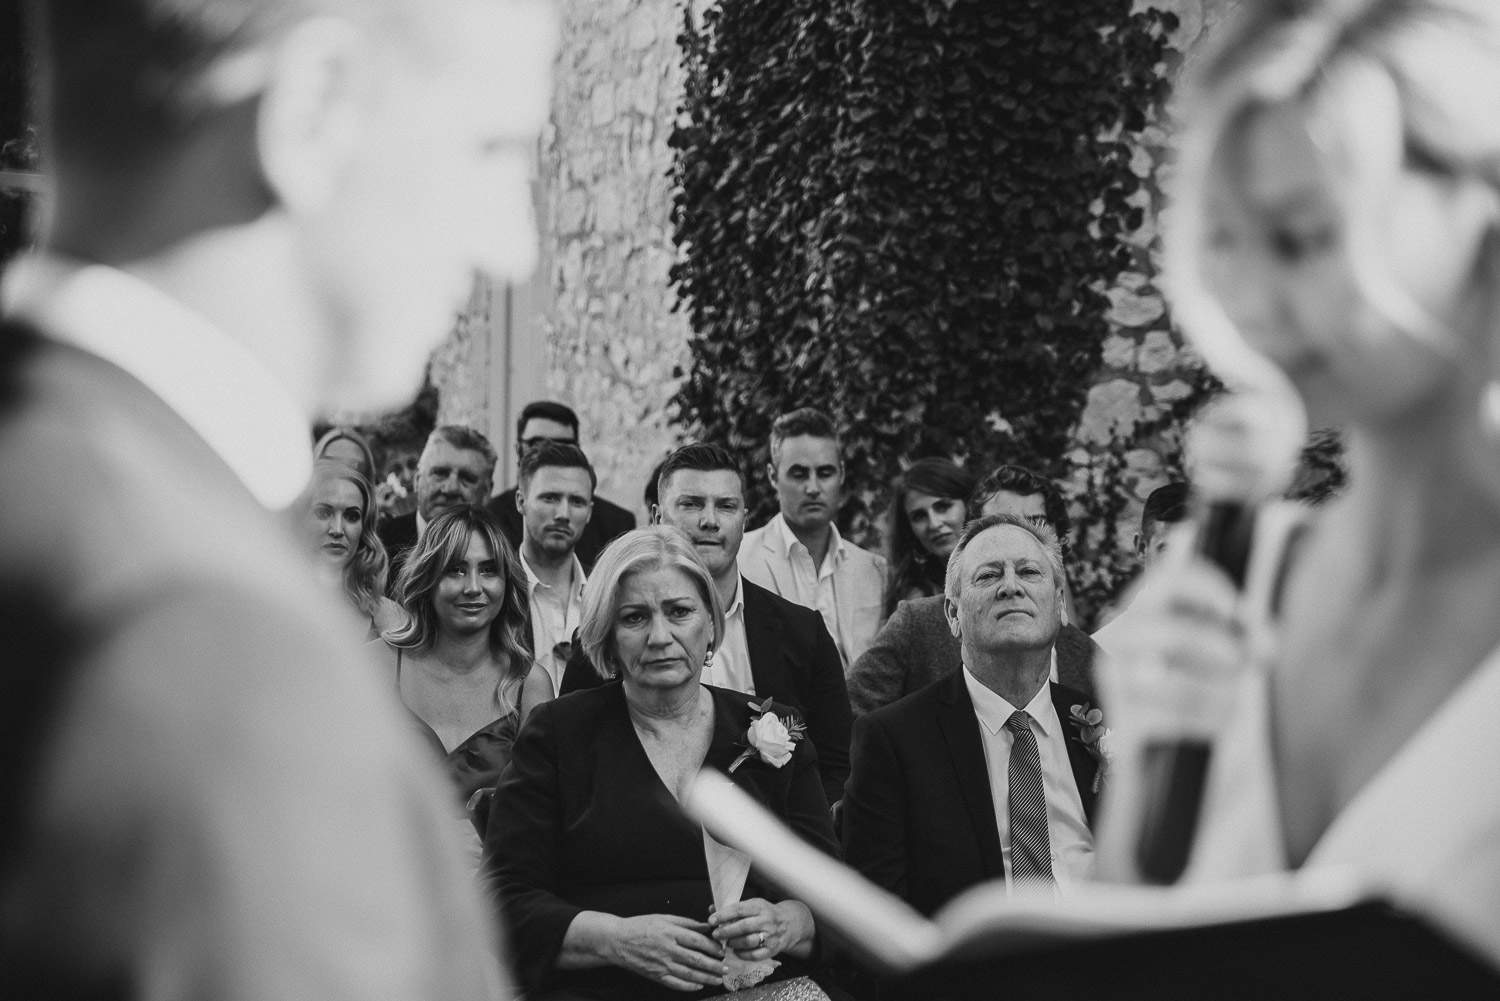 dordogne_eymet_wedding_france_katy_webb_photography_france_UK56